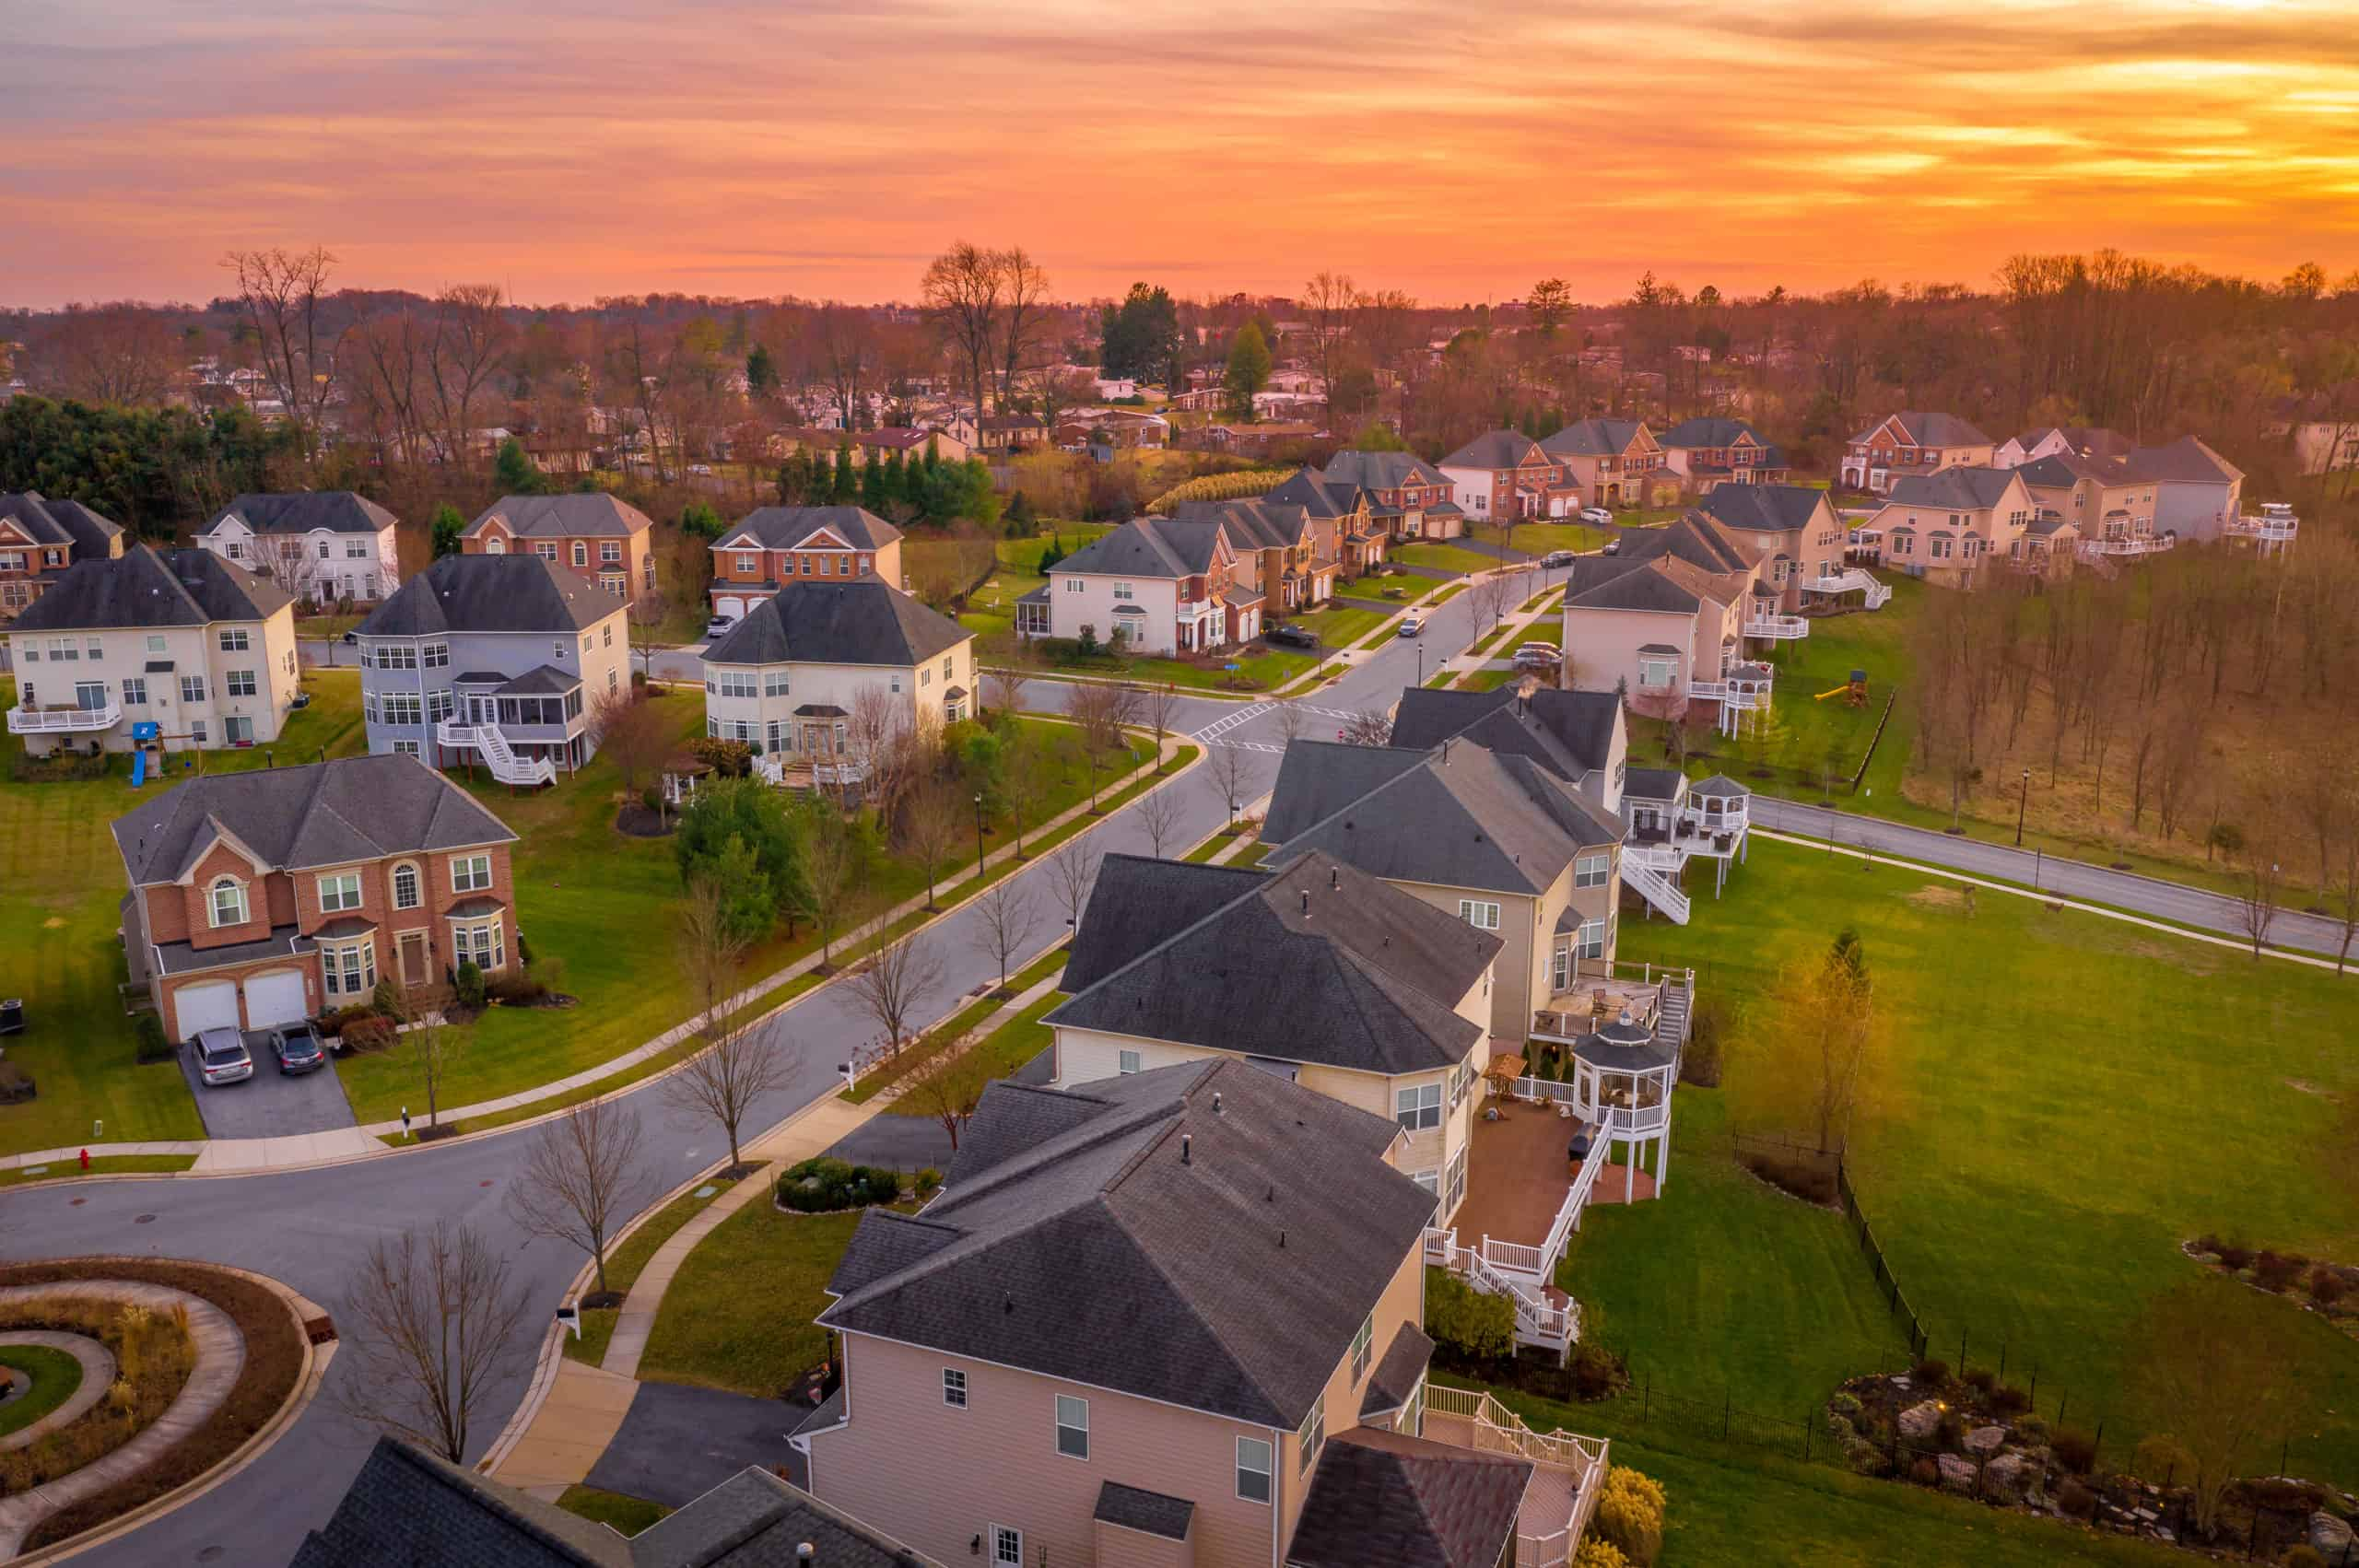 Aerial view of neighborhood at sunset